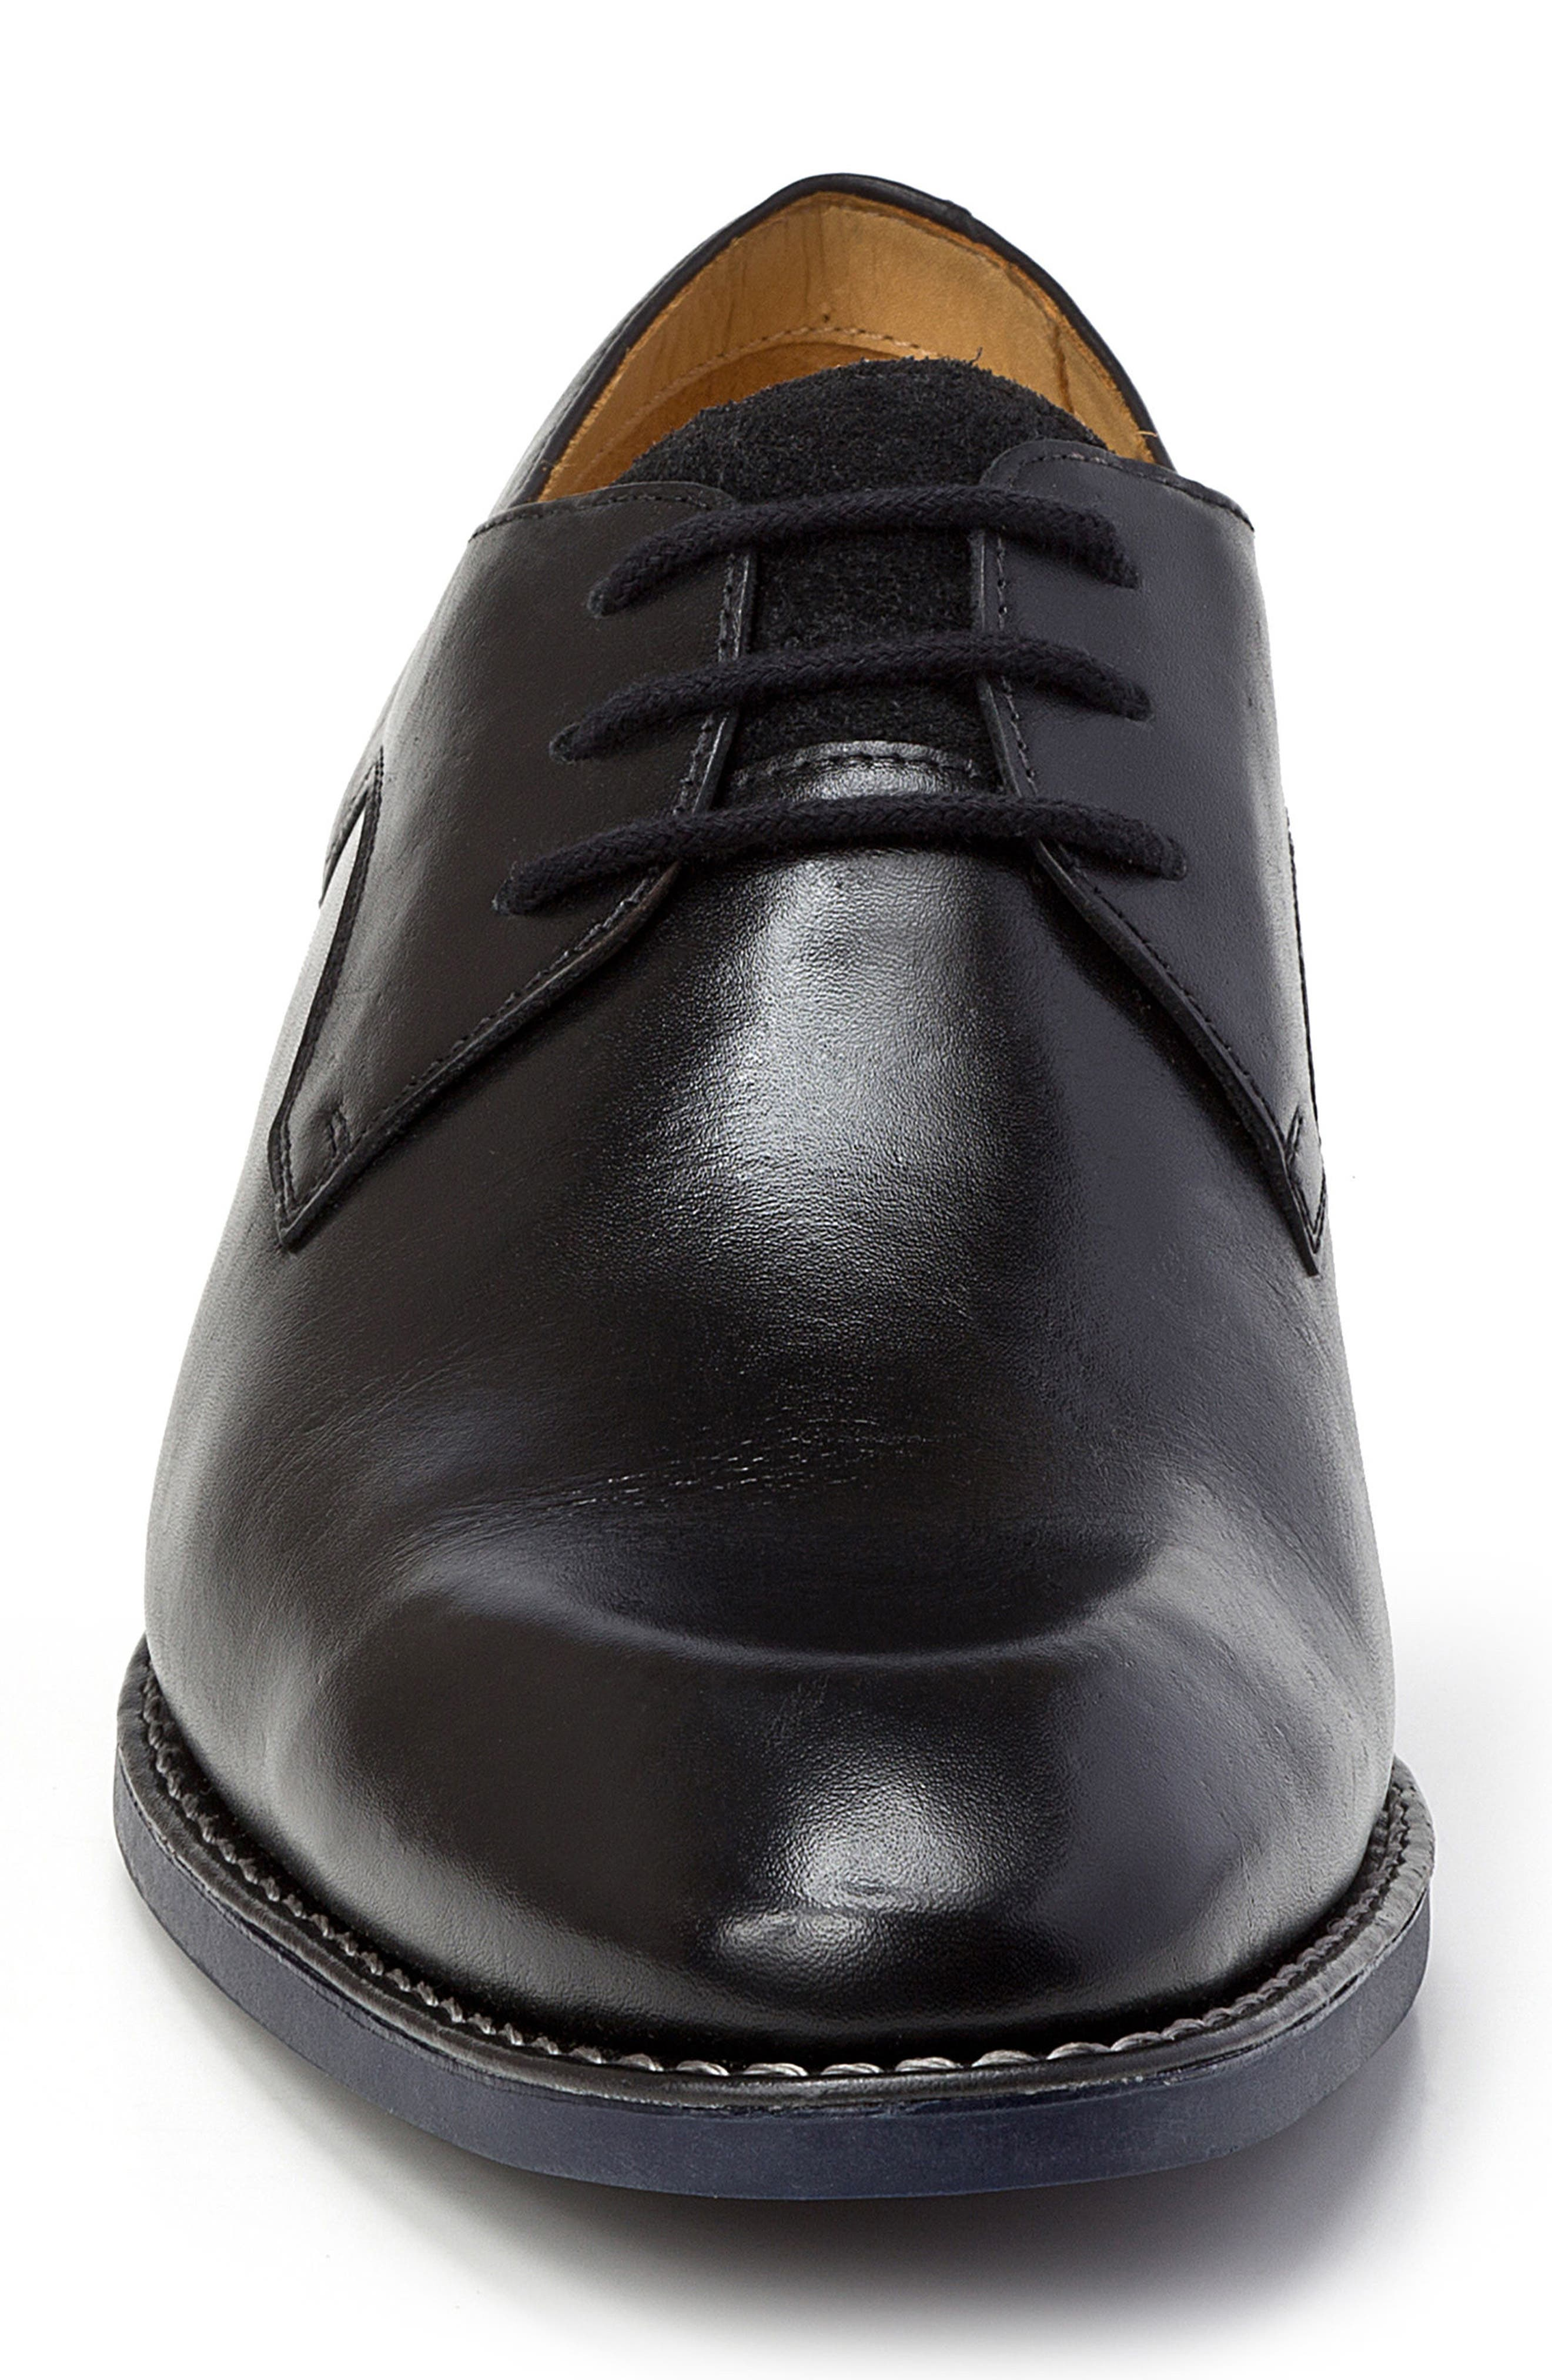 SANDRO MOSCOLONI, Garret Plain Toe Derby, Alternate thumbnail 4, color, BLACK LEATHER